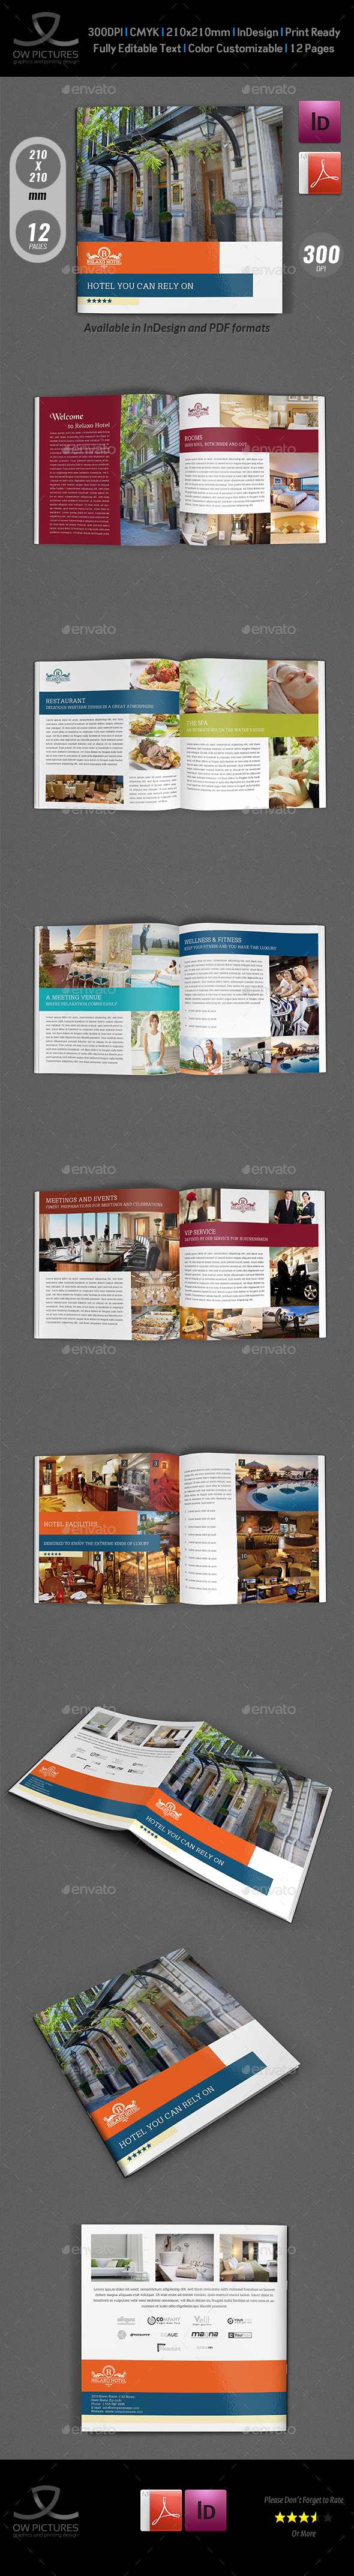 Hotel and Motel Brochure Template Vol.2 - 12 Pages - Brochures Print Templates